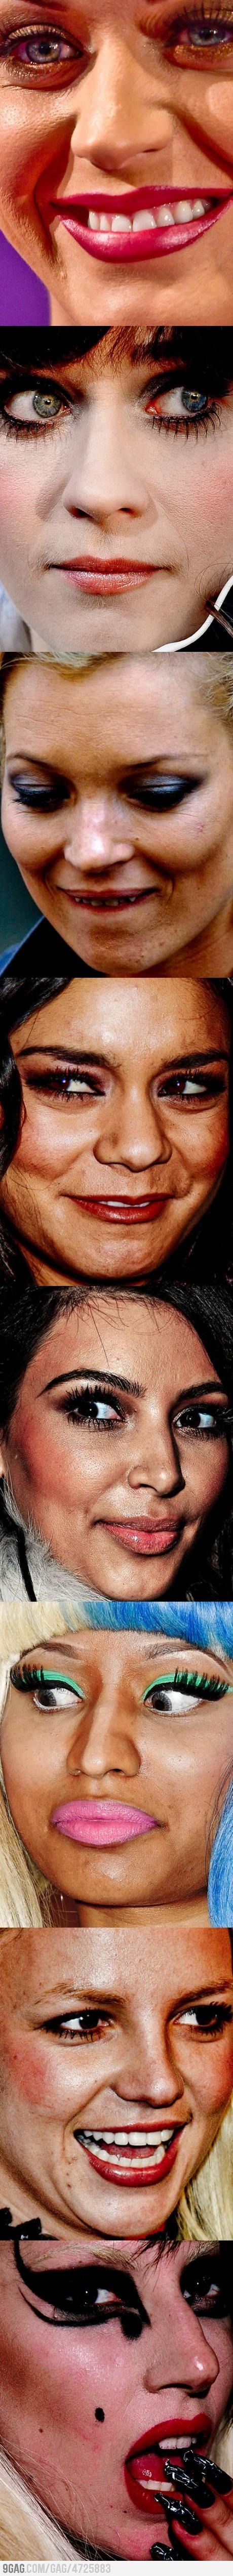 Just some celebrities in Close Up (click on through to see them REALLY close-up - if you dare)